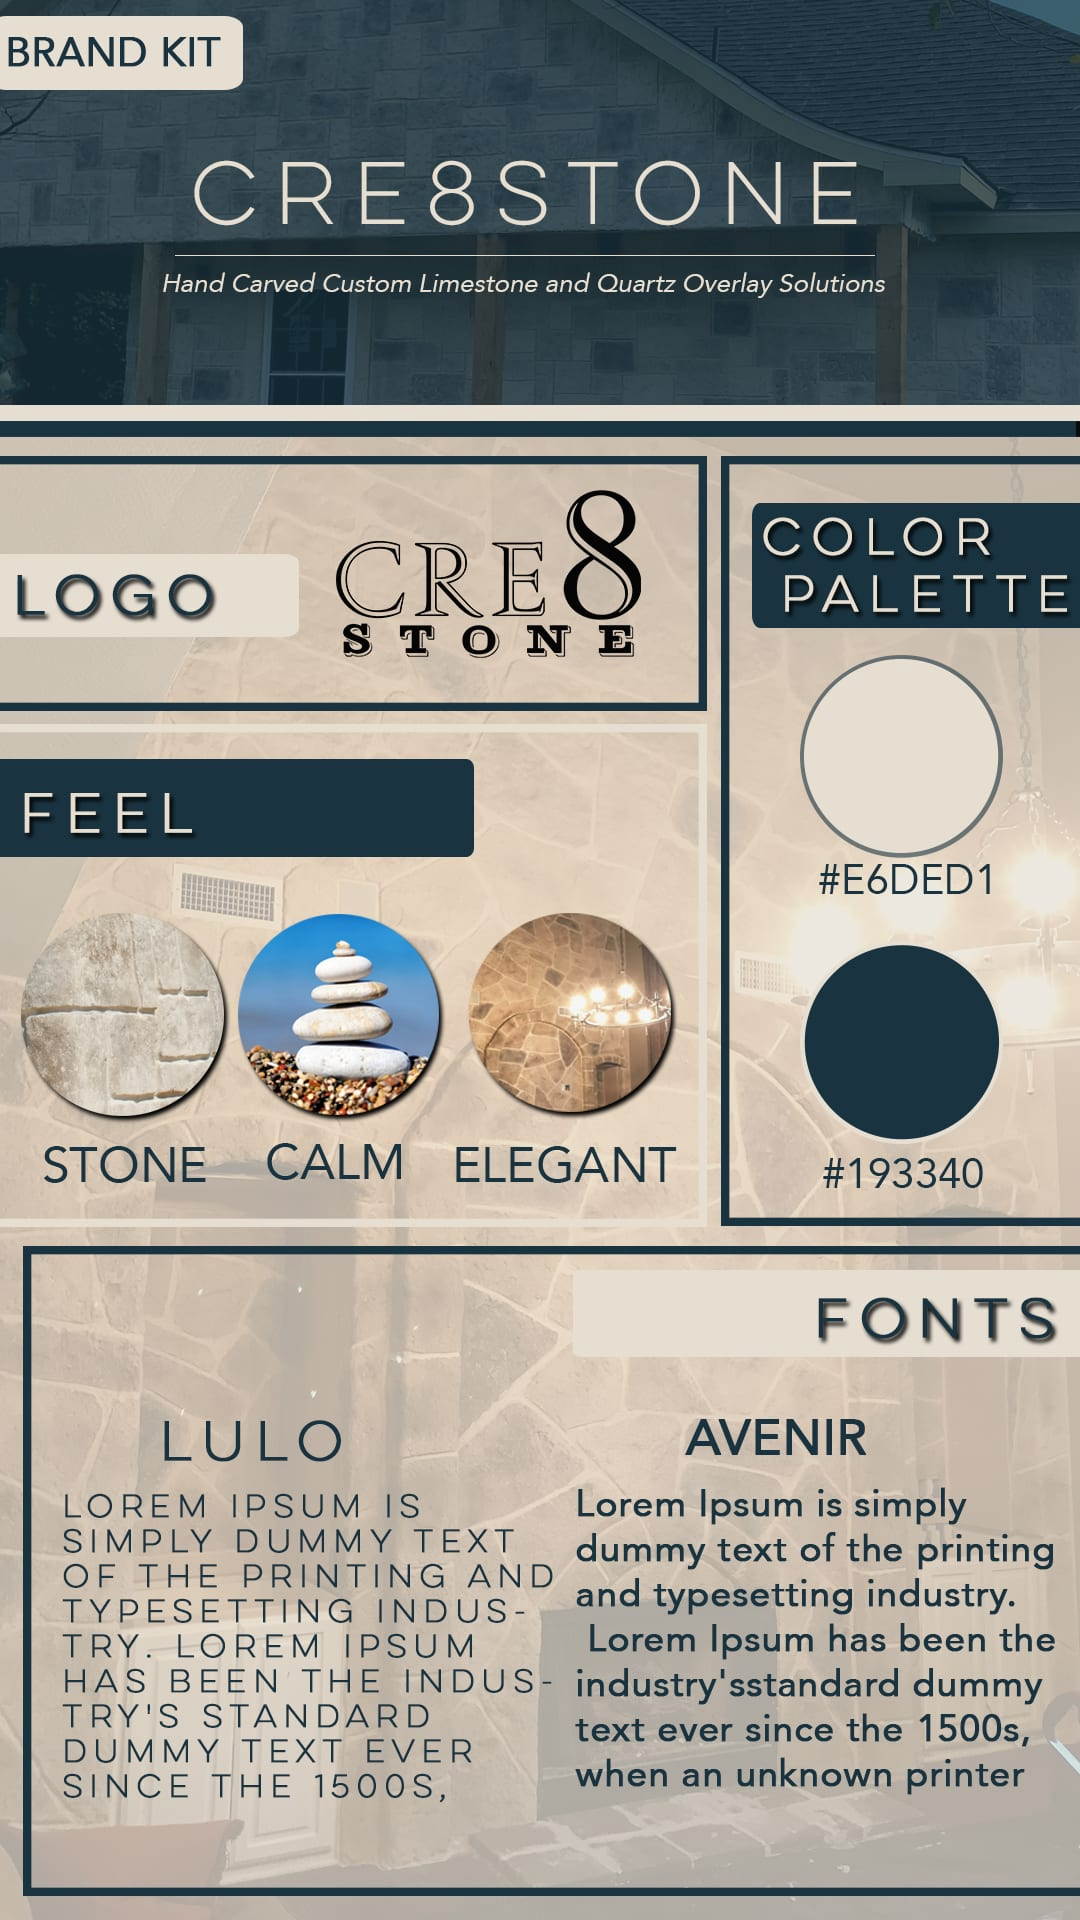 Cre8stone Brand Kit